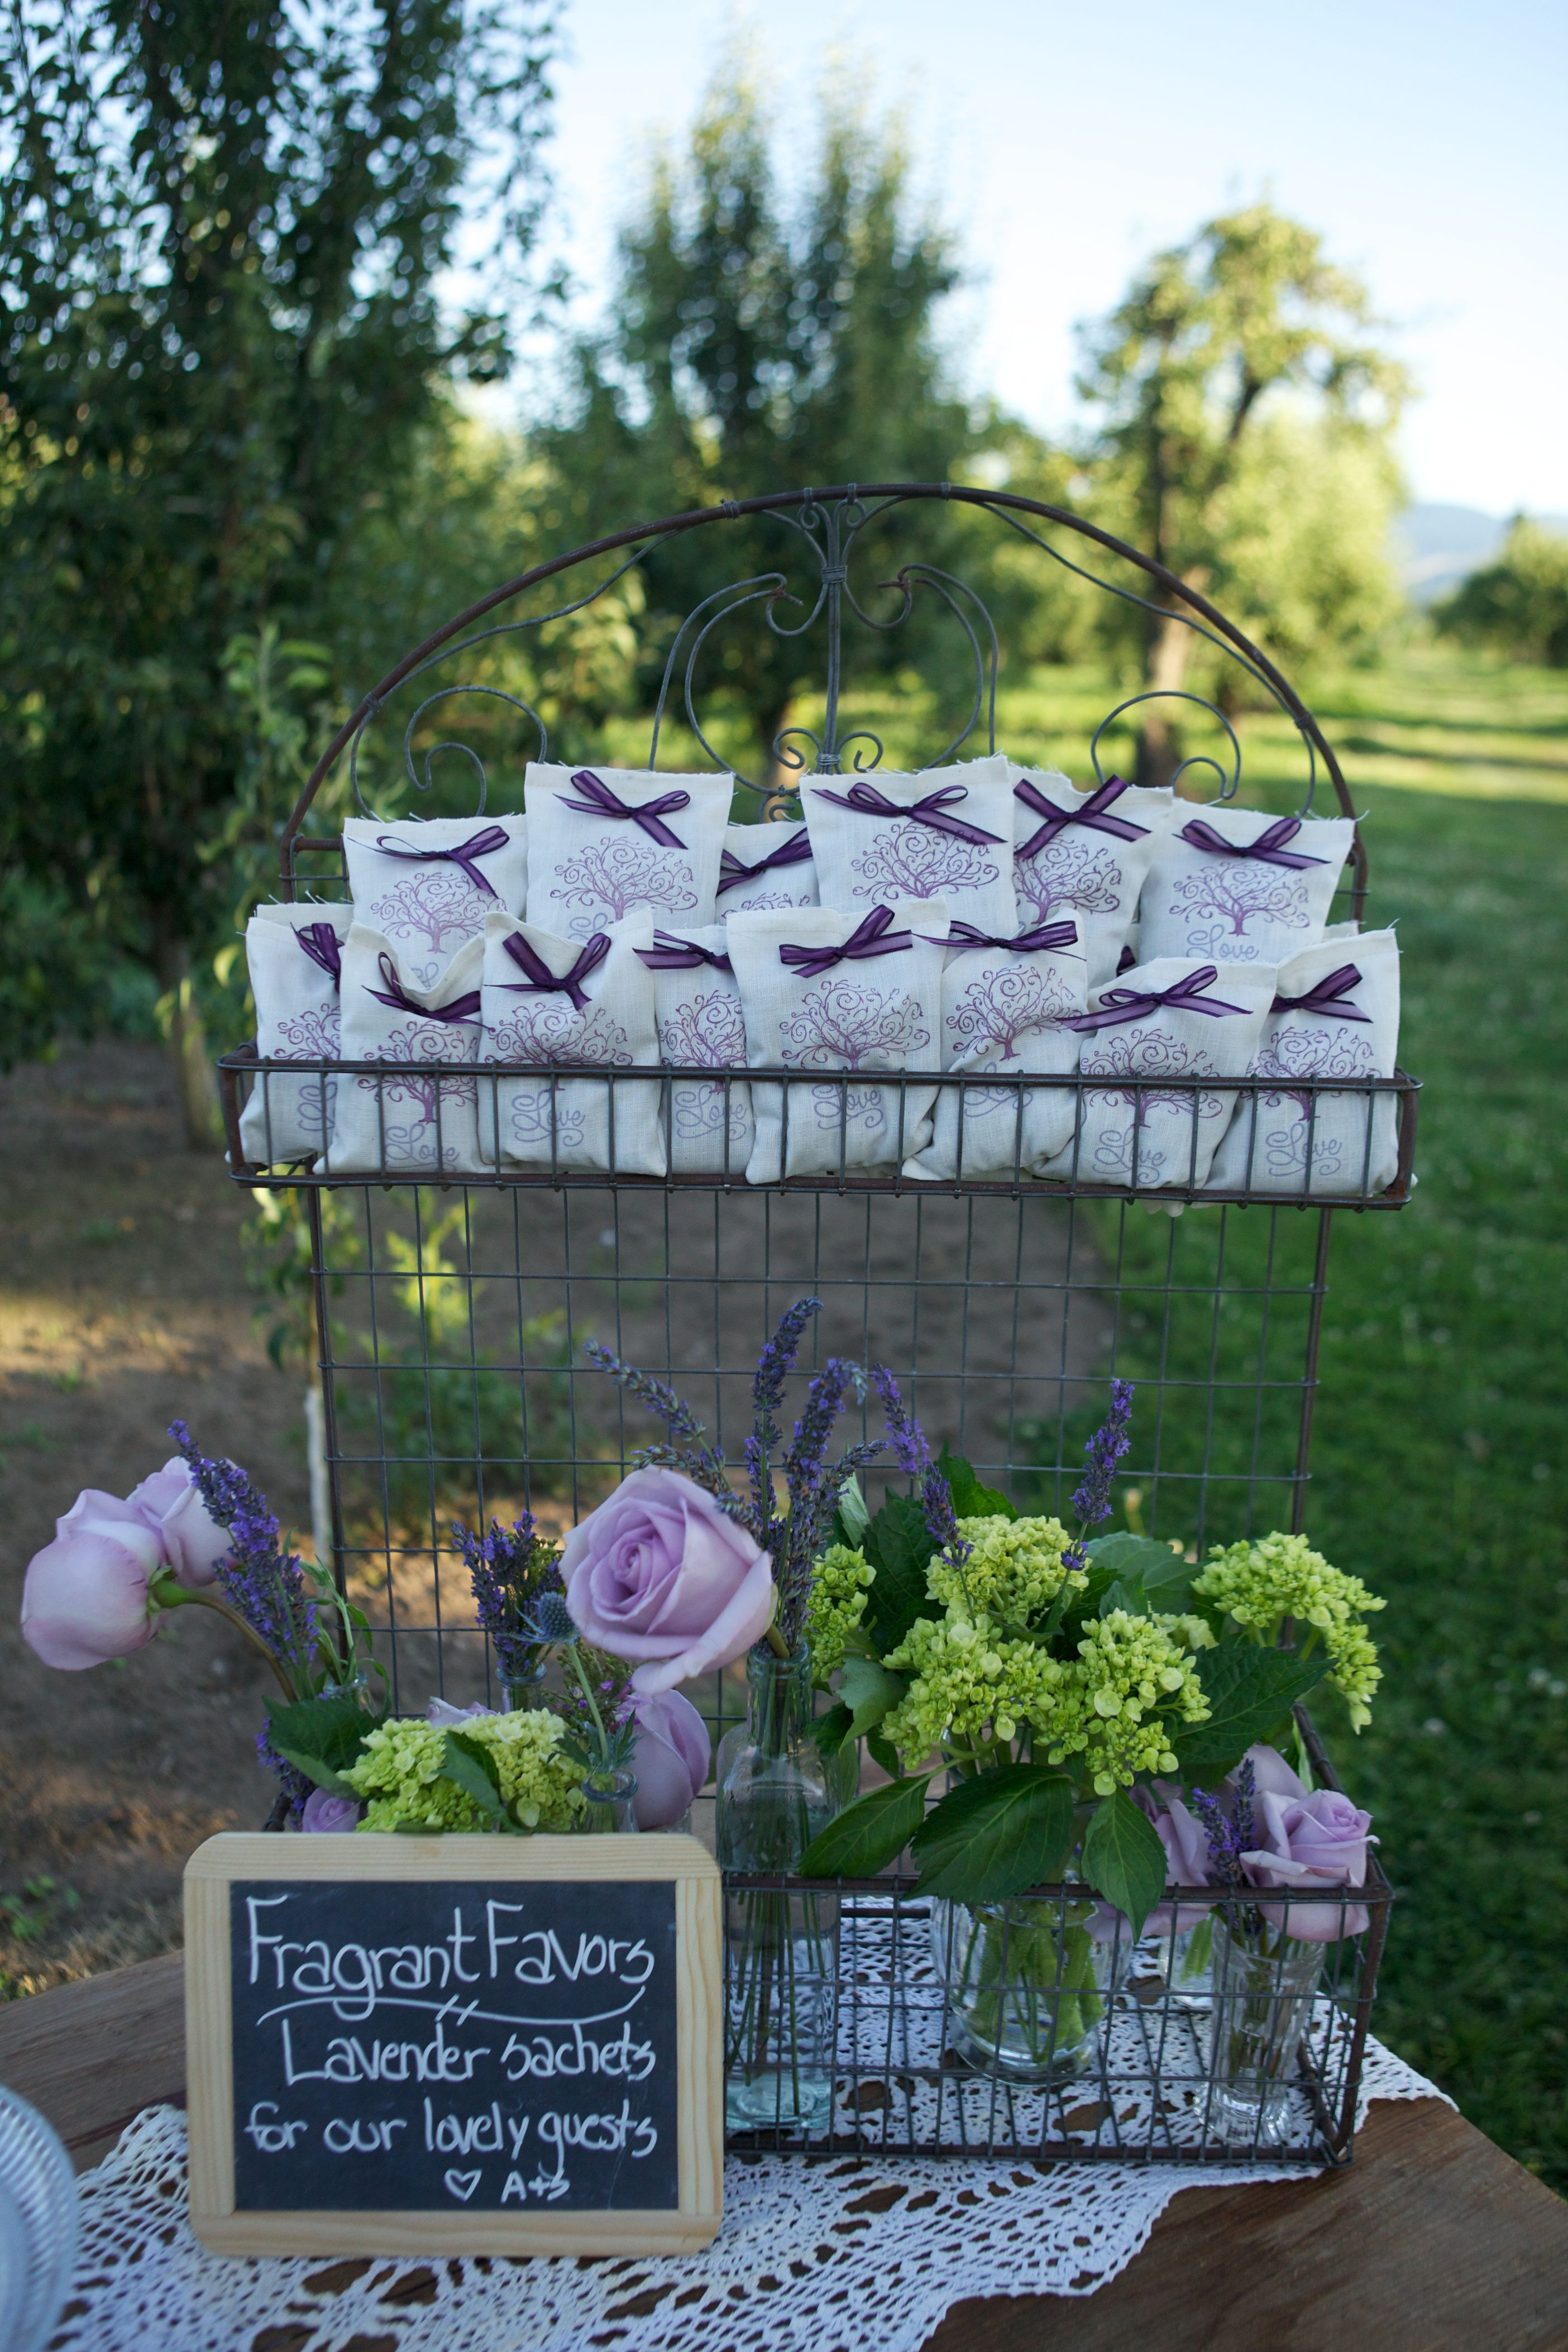 Great idea for a rusticoutdoor country wedding lavender sachet great idea for a rusticoutdoor country wedding lavender sachet favors make them solutioingenieria Images